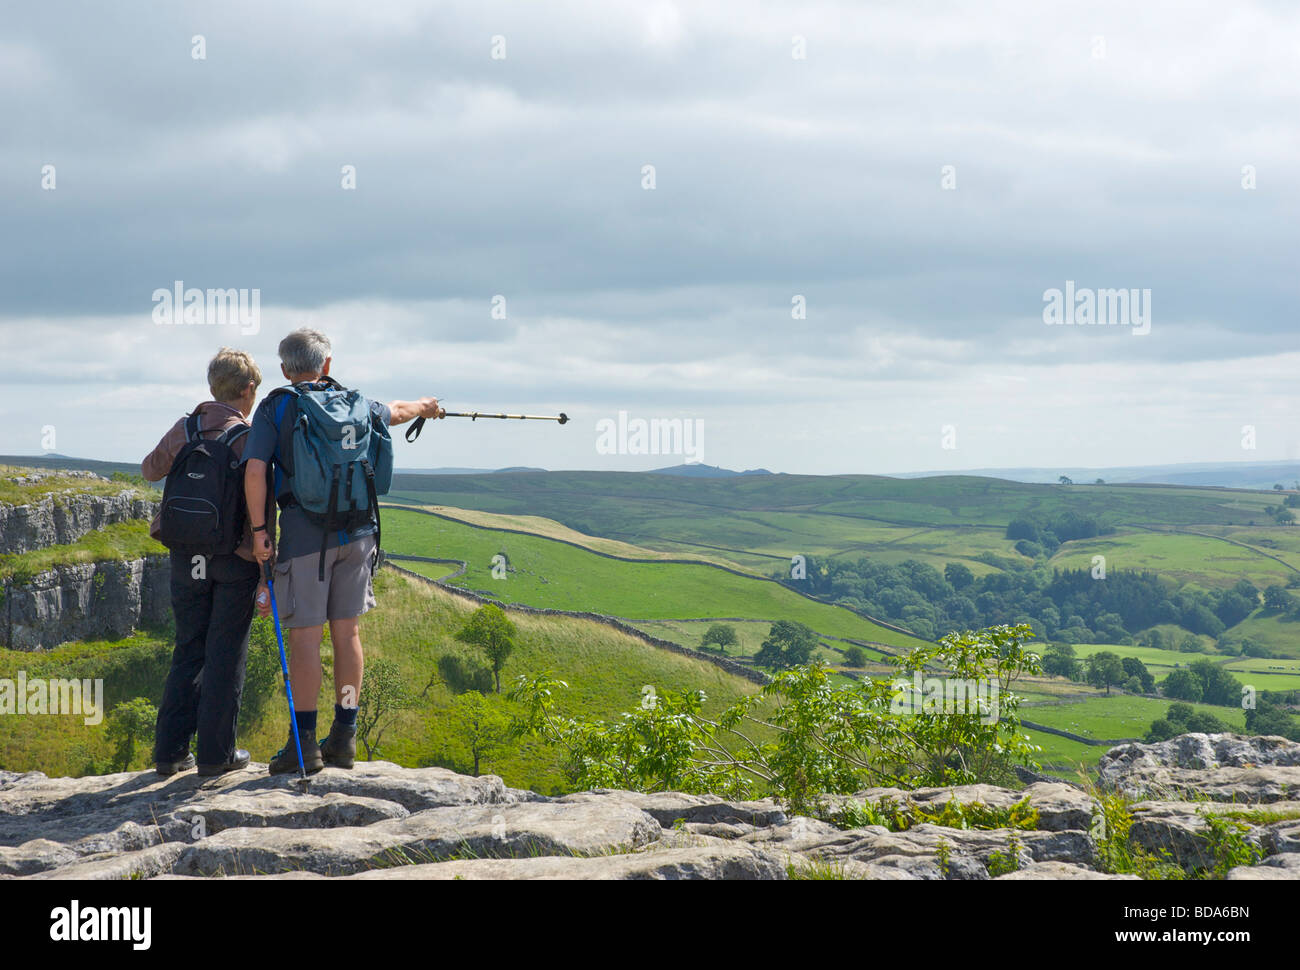 Two people enjoying the view from the top of Malham Cove, Yorkshire Dales National Park, North Yorkshire,  England Stock Photo